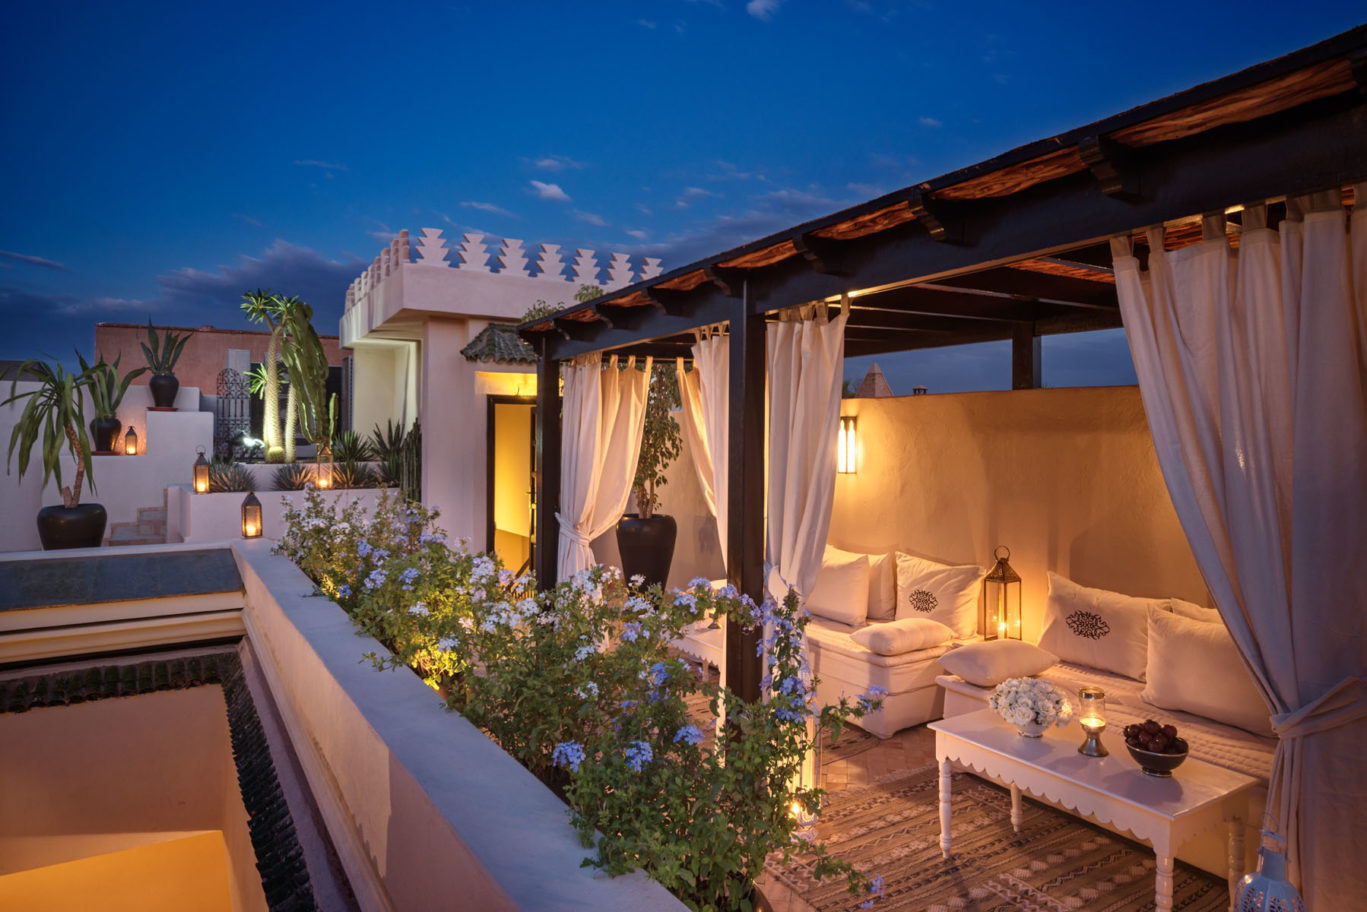 Riad Kheirredine 5 Star Luxury Riad Marrakesh Morocco